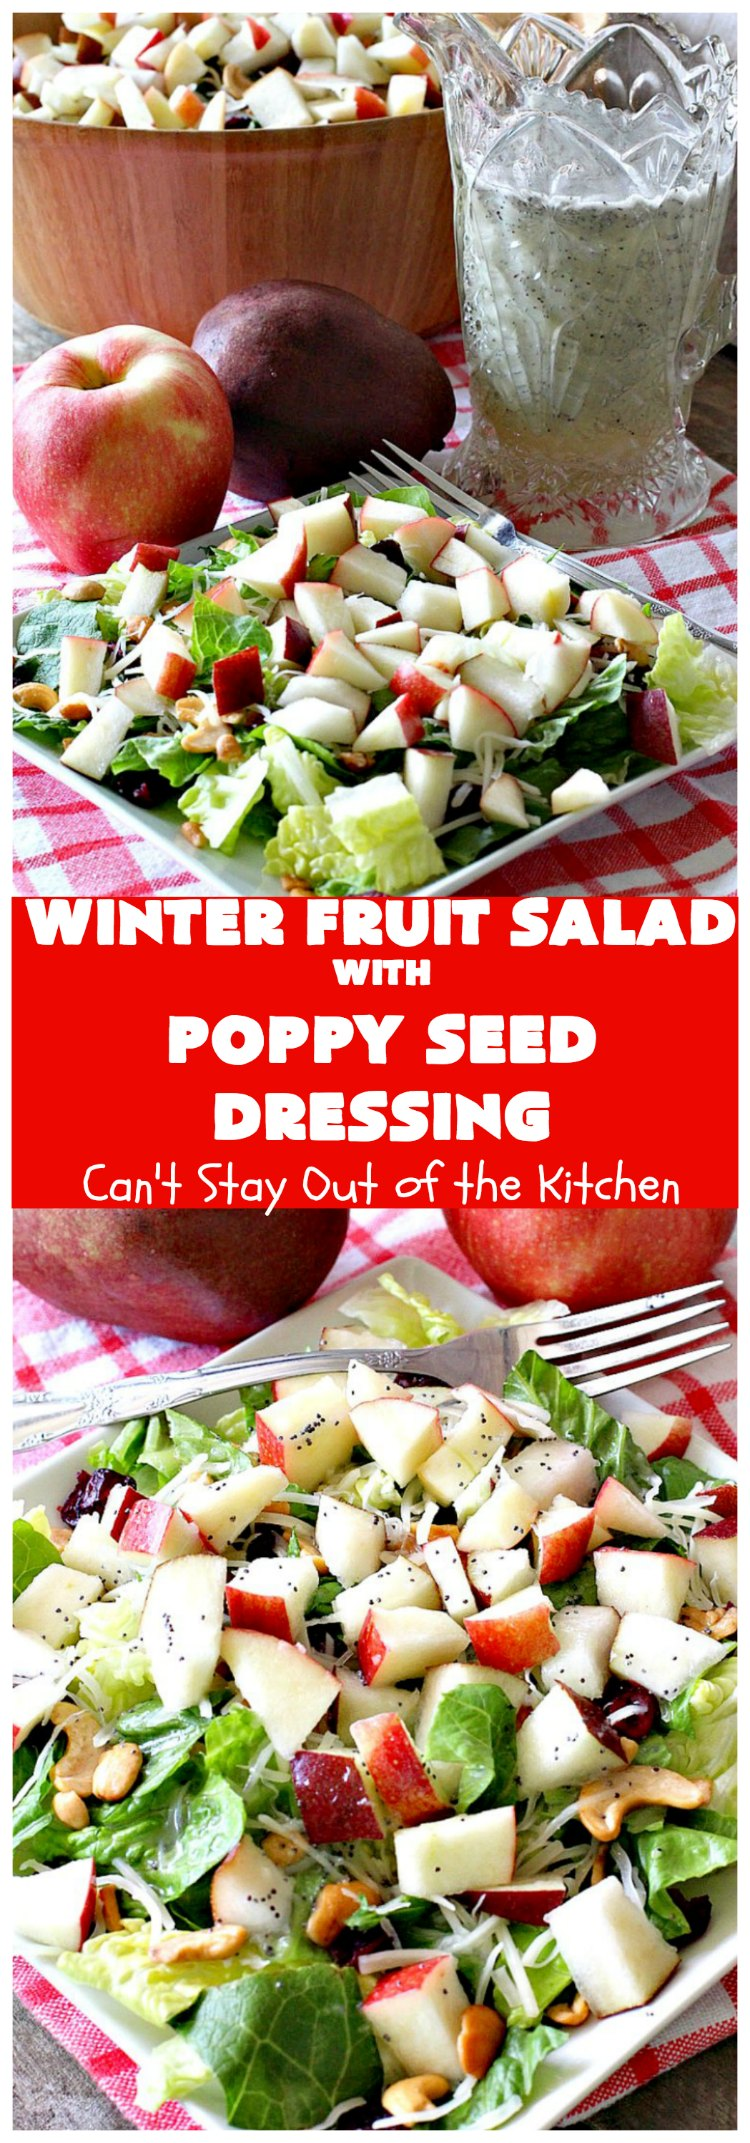 Winter Fruit Salad with Poppyseed Dressing | Can't Stay Out of the Kitchen